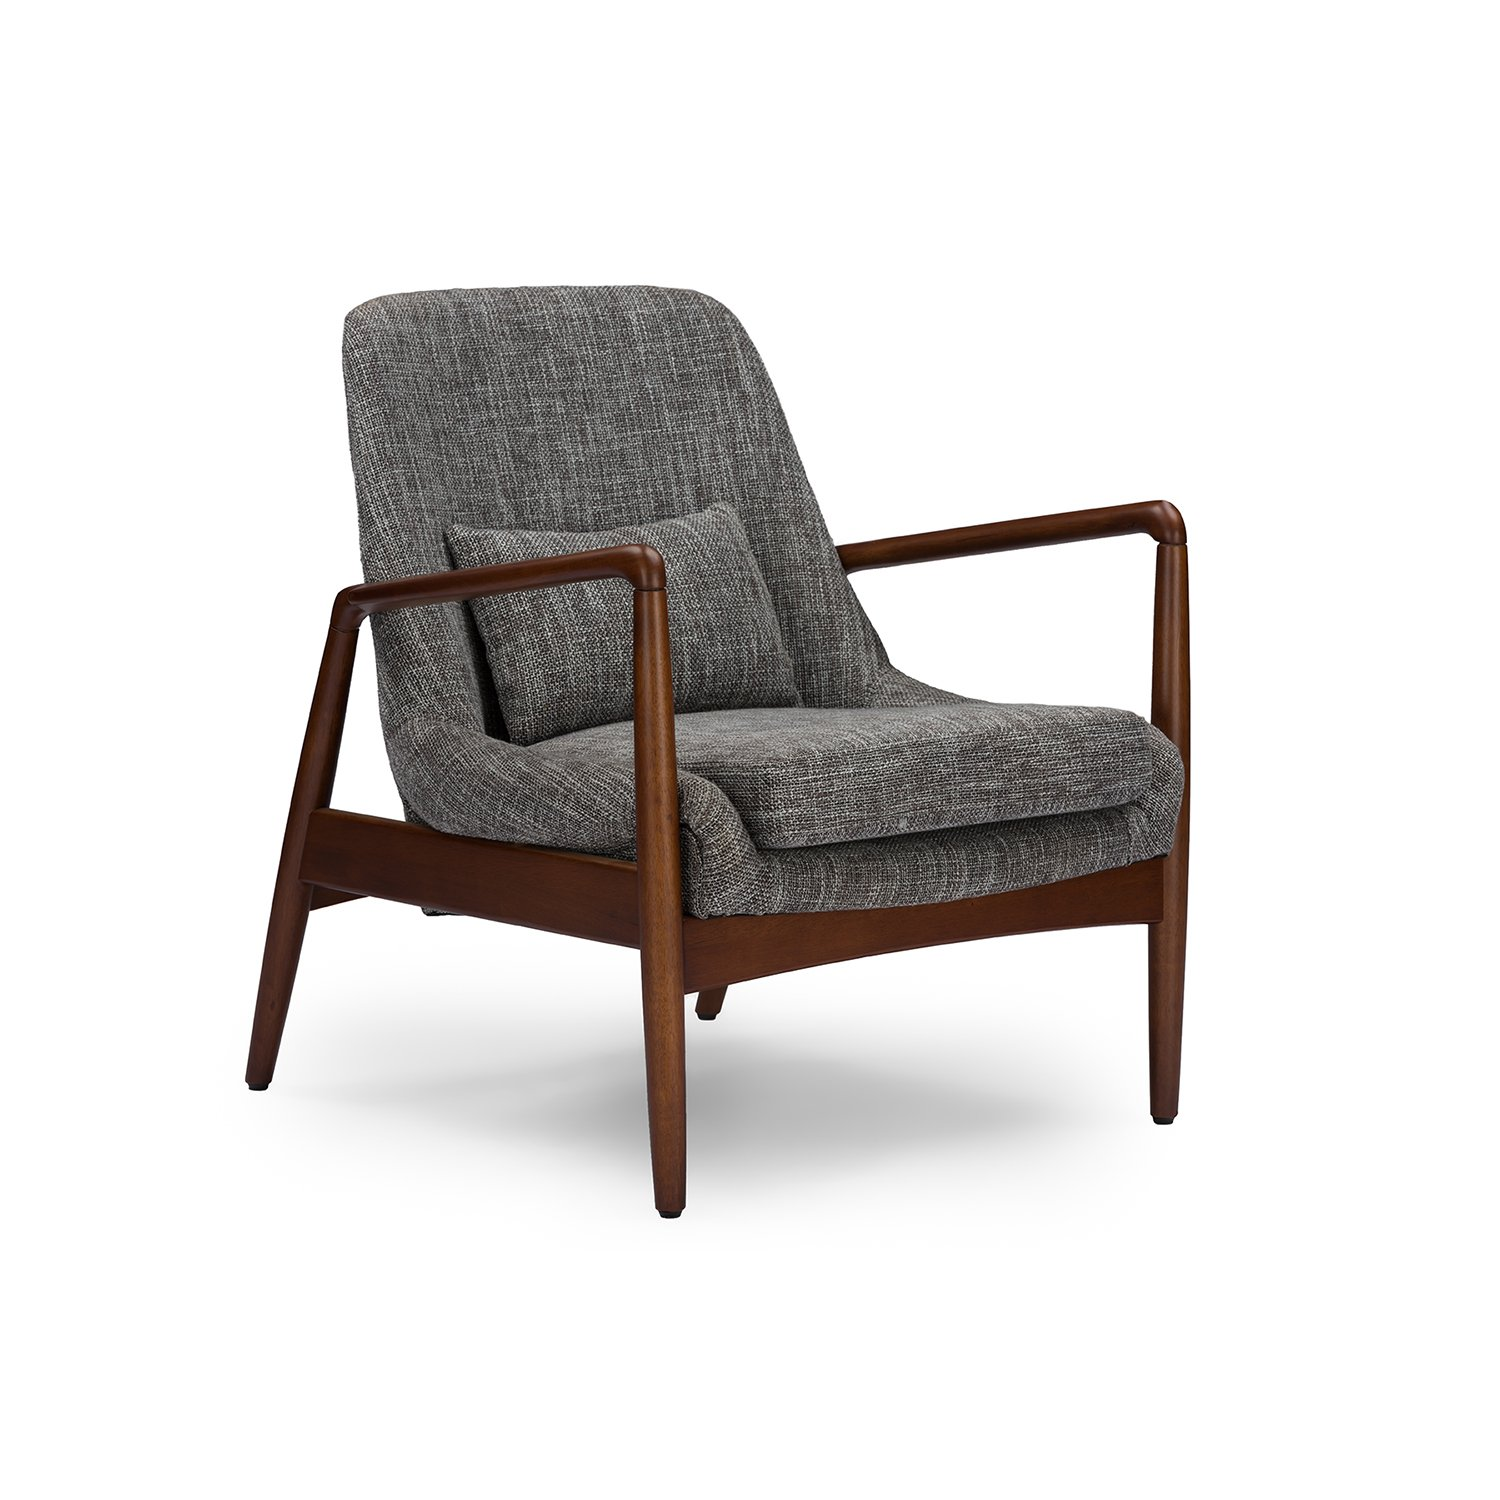 Charming Amazon.com   Wholesale Interiors Baxton Studio Carter Mid Century Modern  Retro Fabric Upholstered Leisure Accent Chair In Walnut Wood Frame, Large,  ...